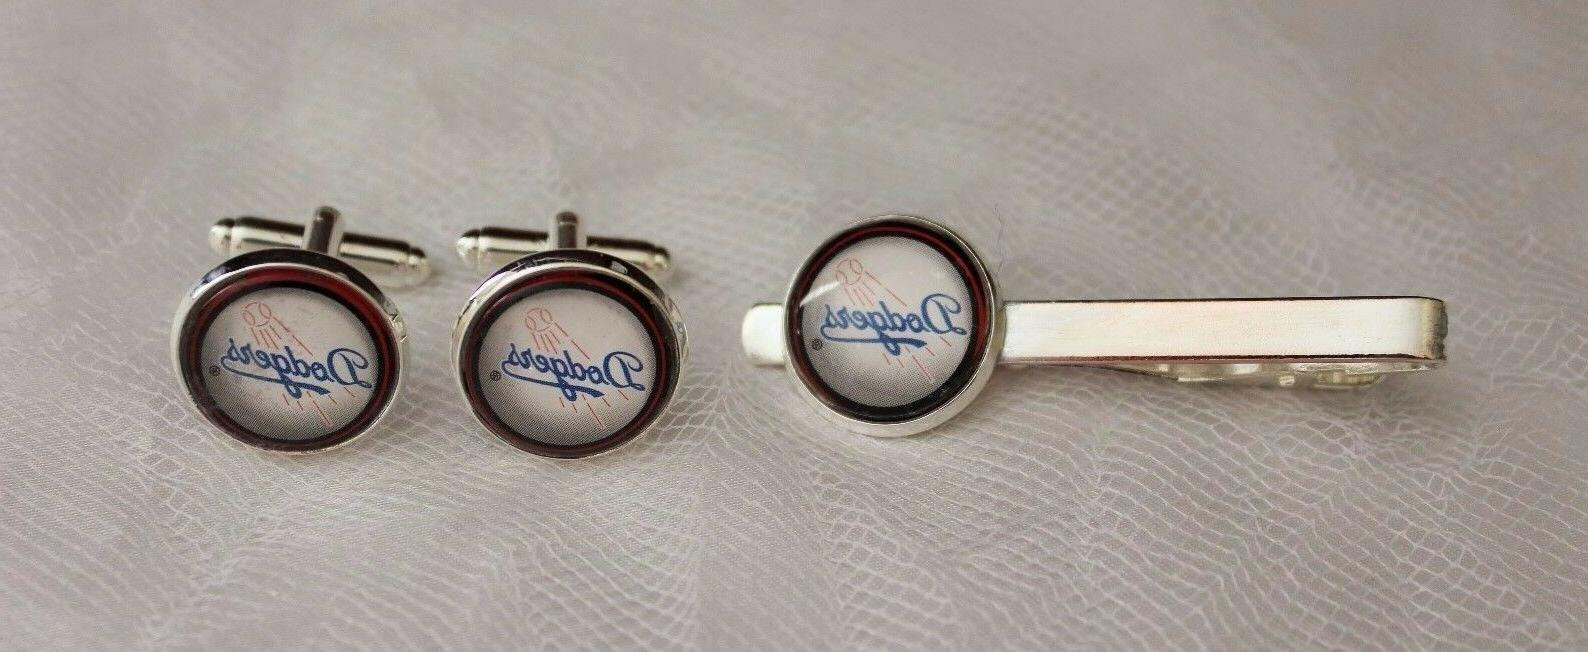 los angeles dodgers cuff links and tie